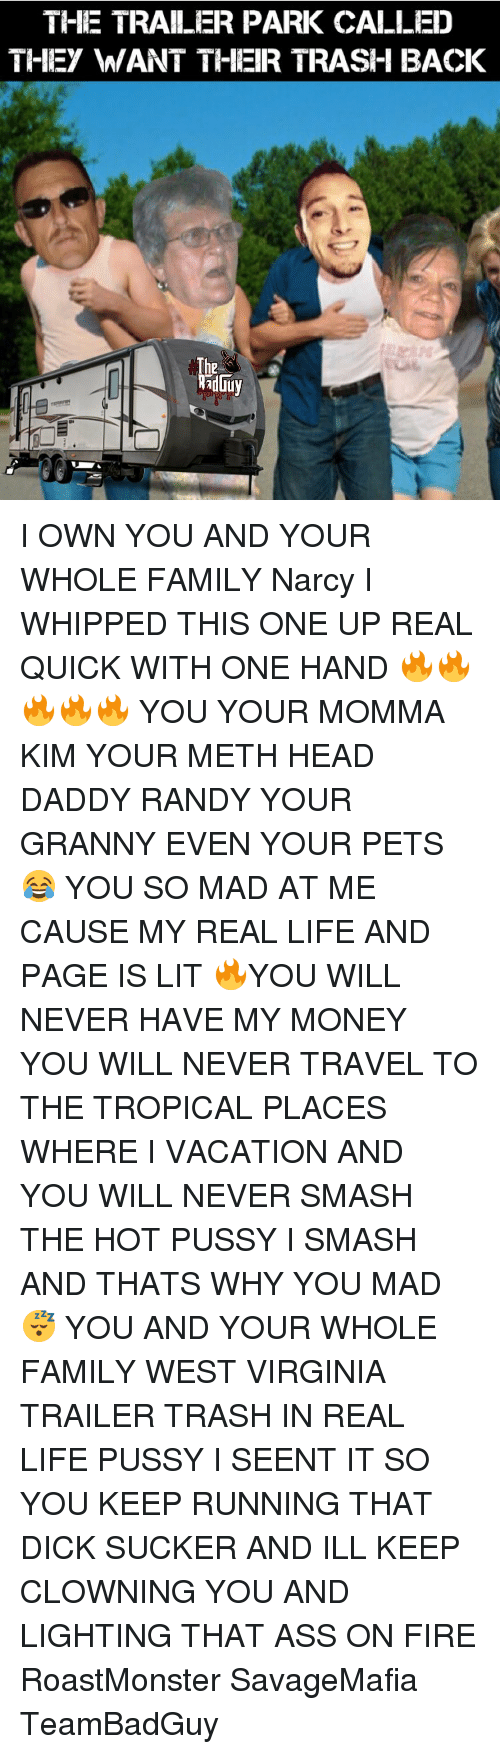 trailer trash tits and pussy